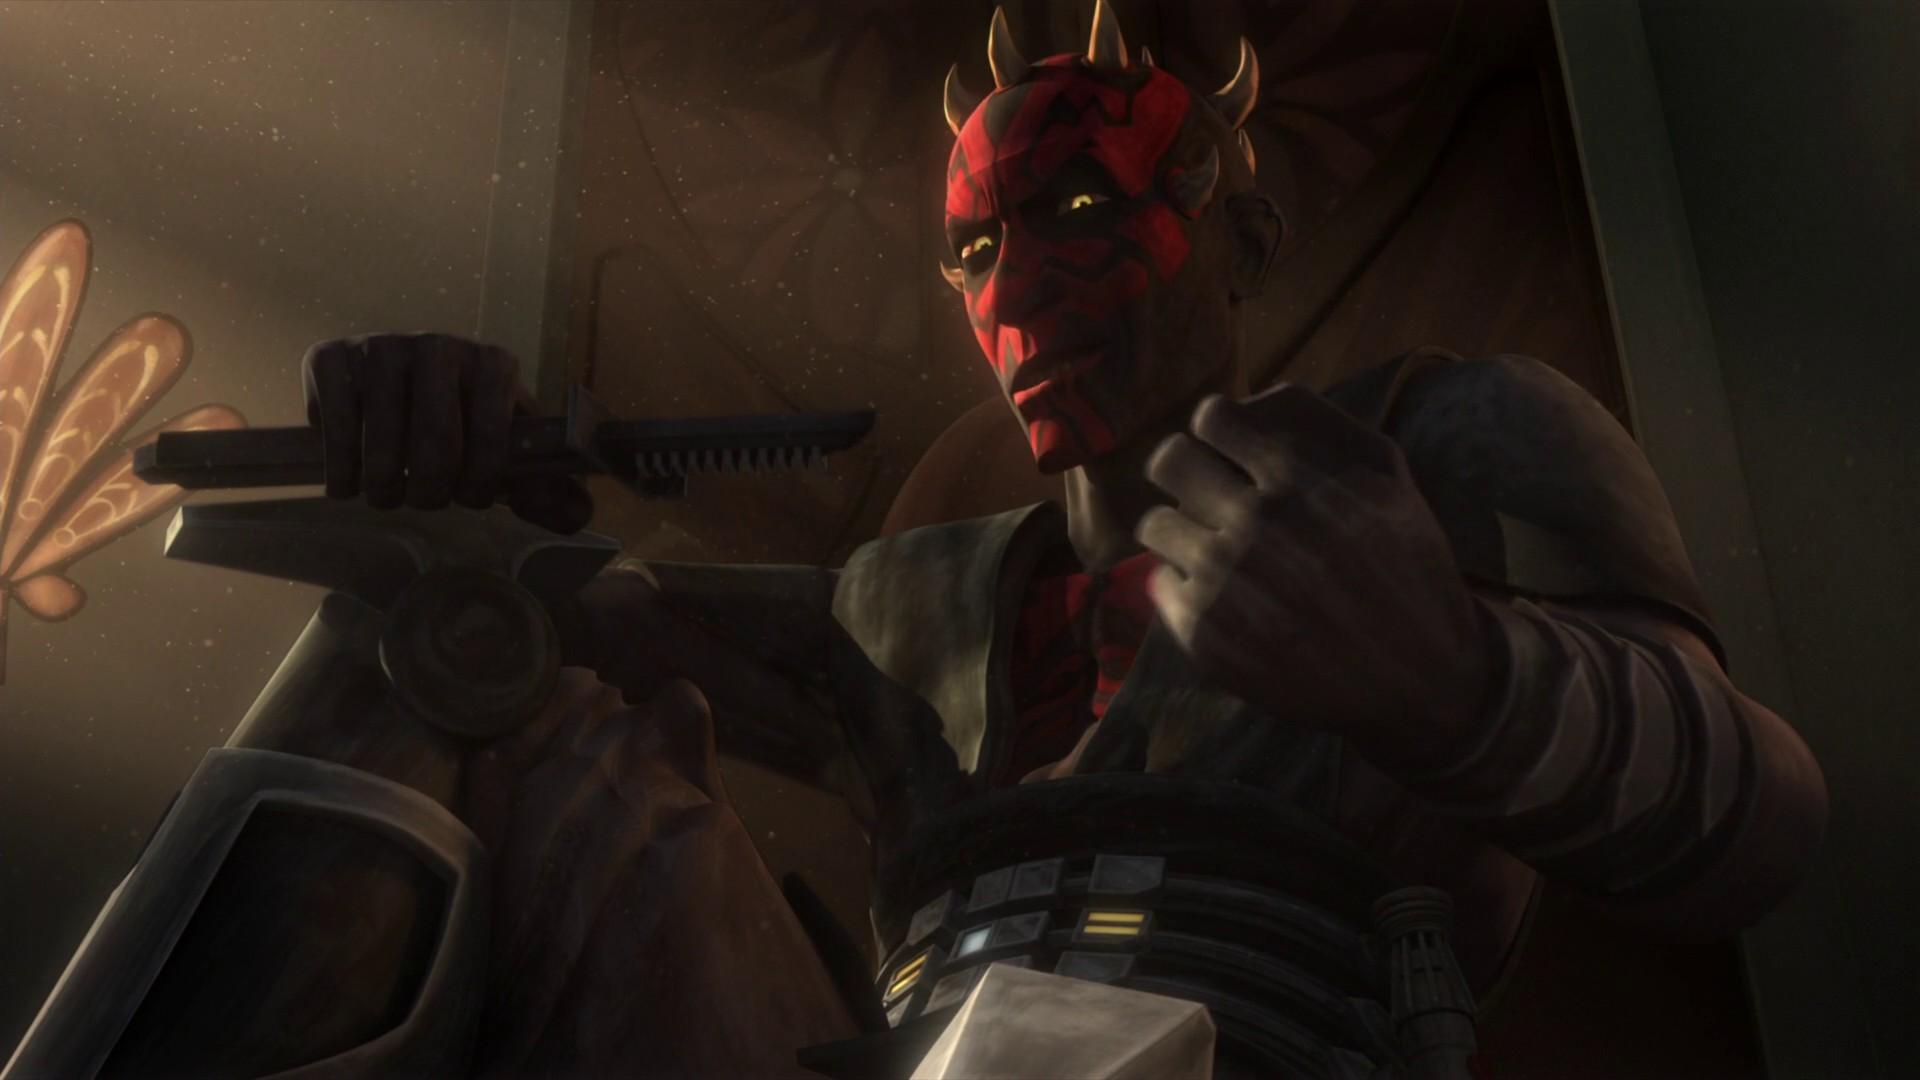 Darth Maul will have the usual force user nerf in these fights  (Choke,Grip,Mind tricks) everything else is fine